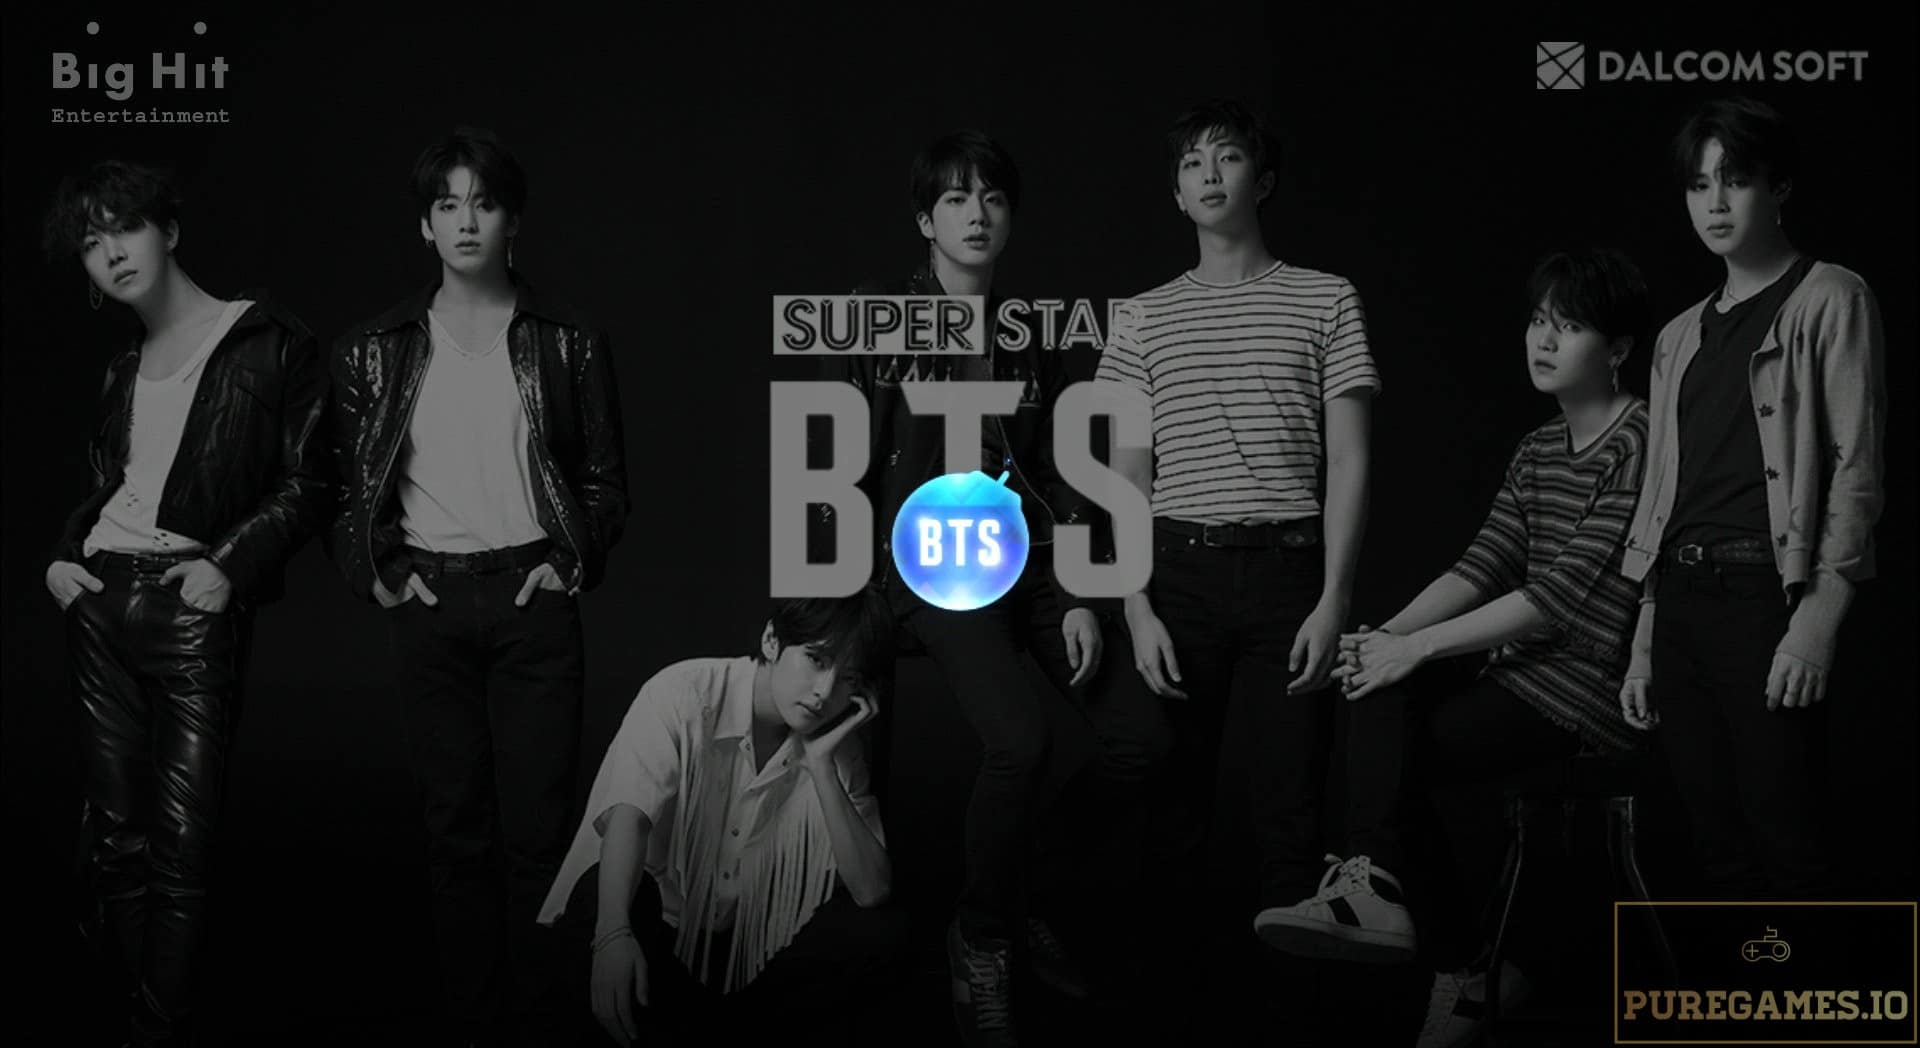 Download SuperStar BTS MOD APK - For Android/iOS 4